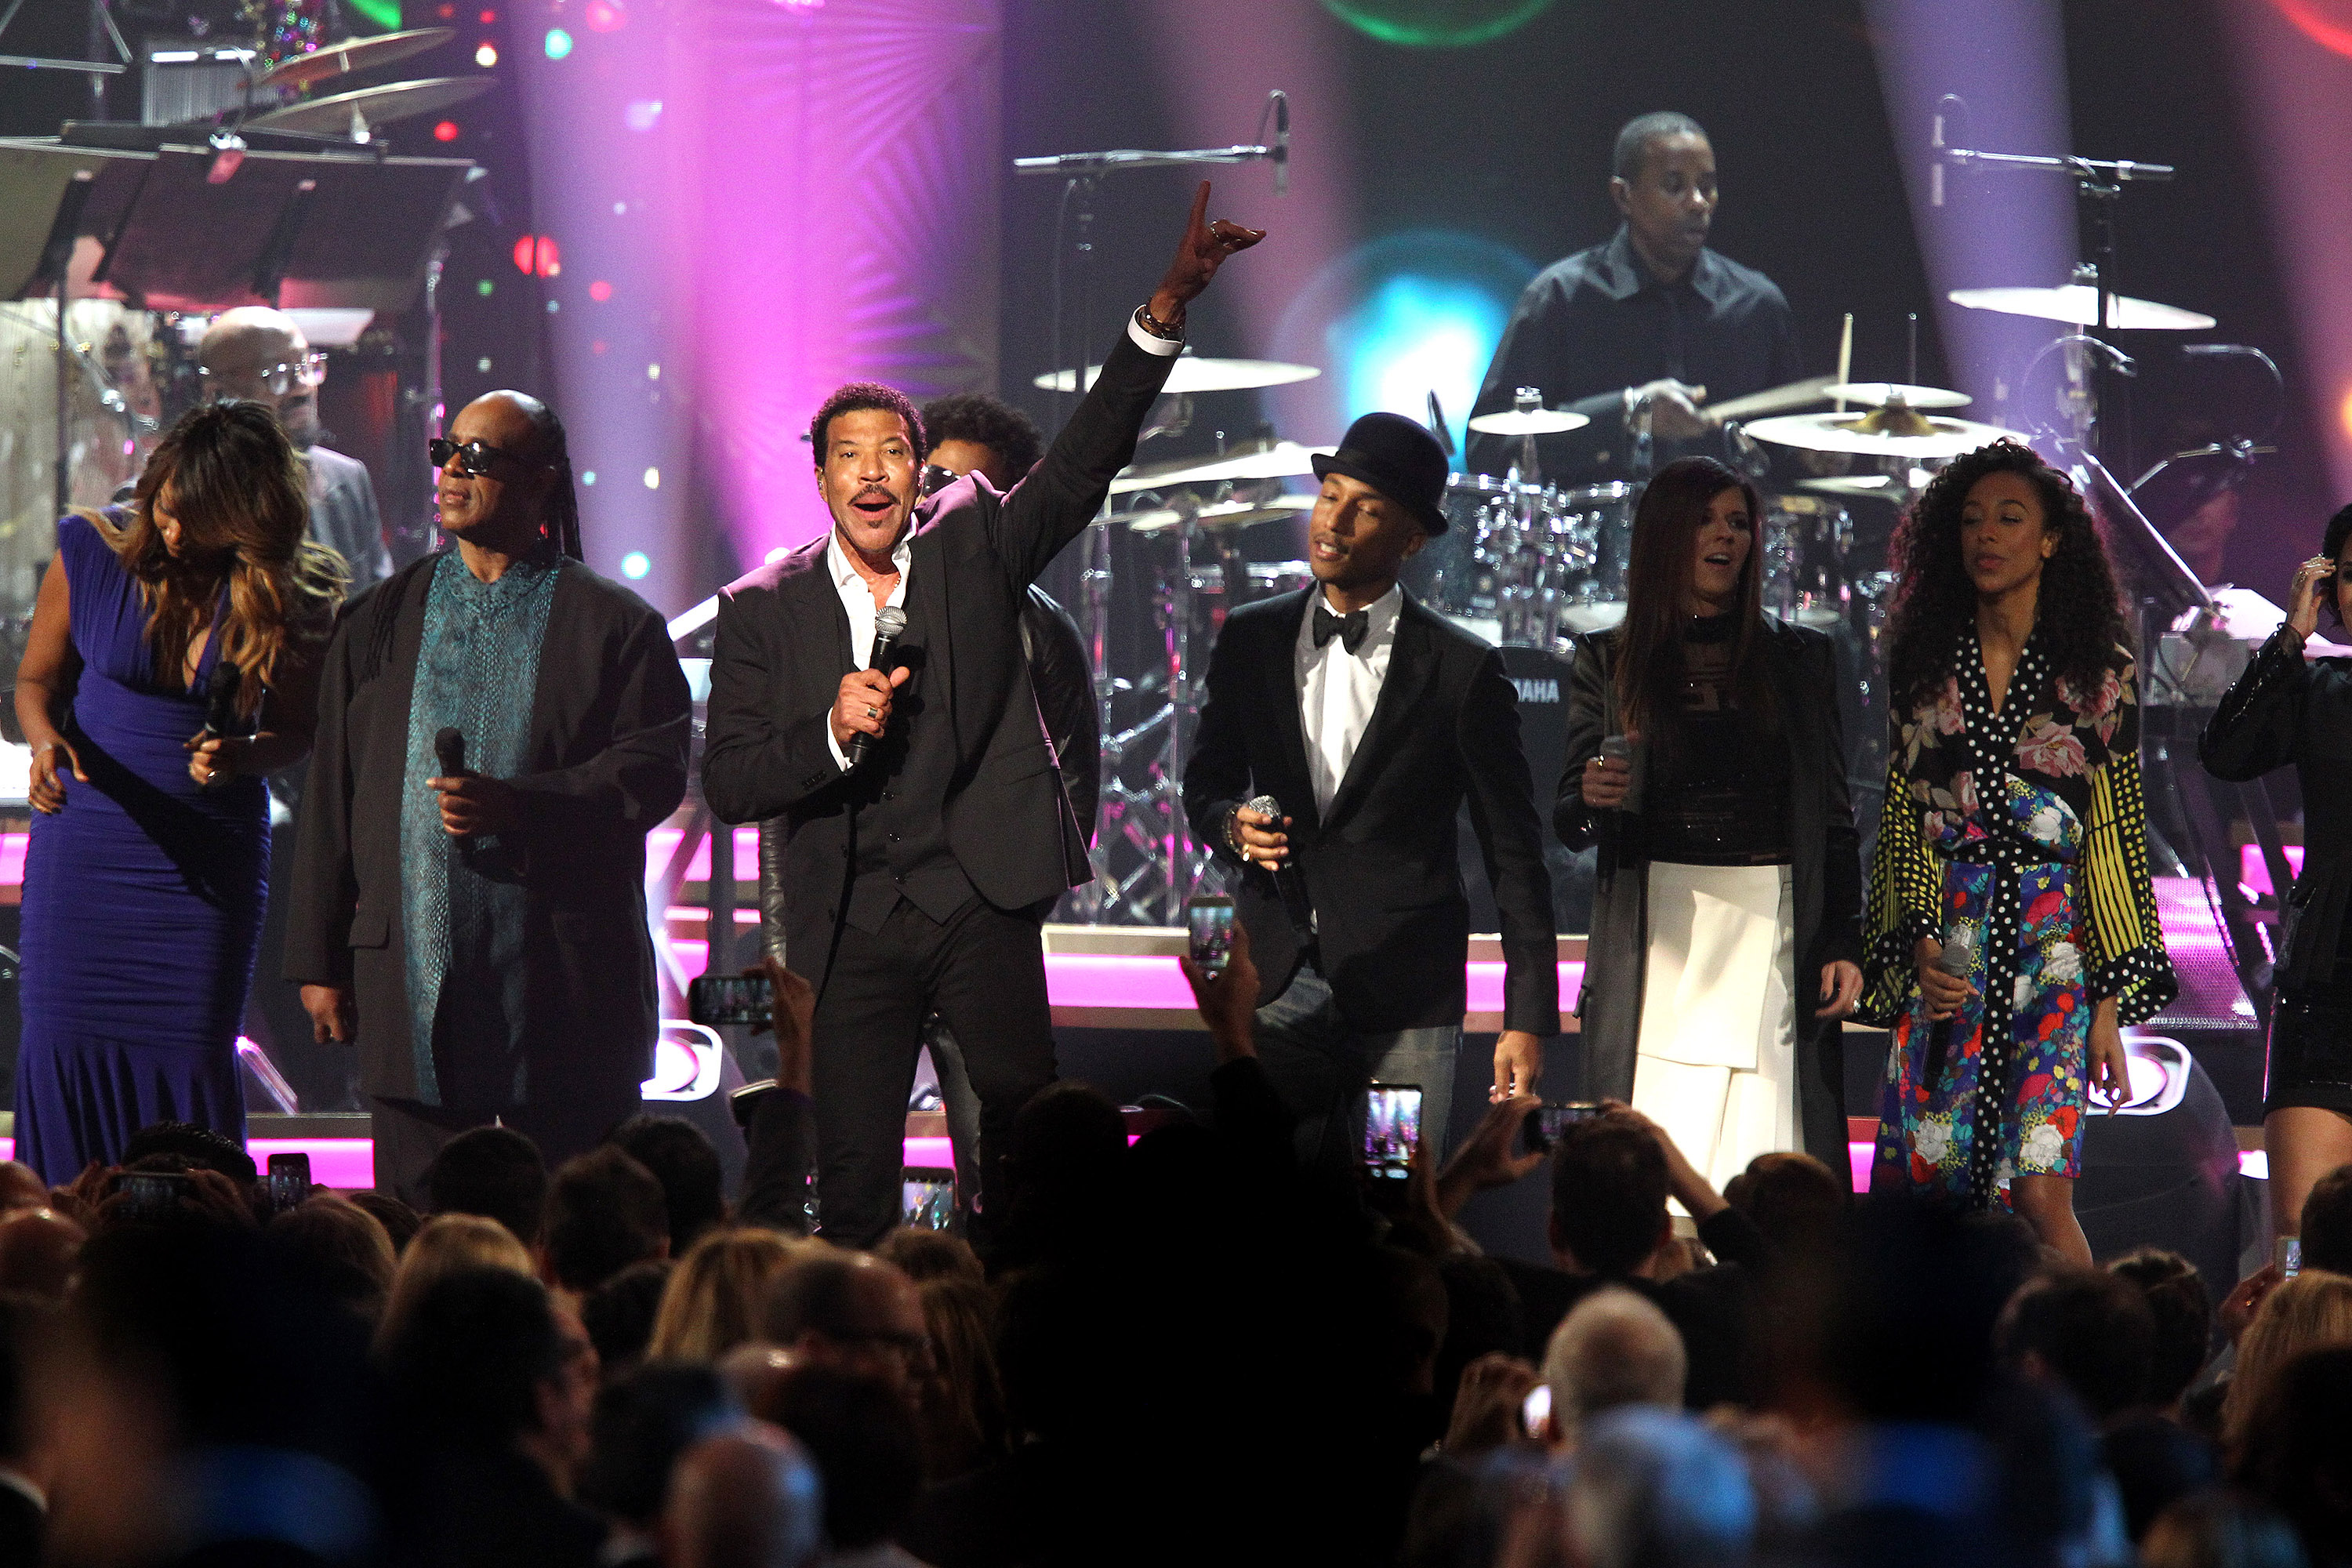 Dave Grohl, Stevie Wonder Sing Lionel Richie Hits at Joyous MusiCares Show